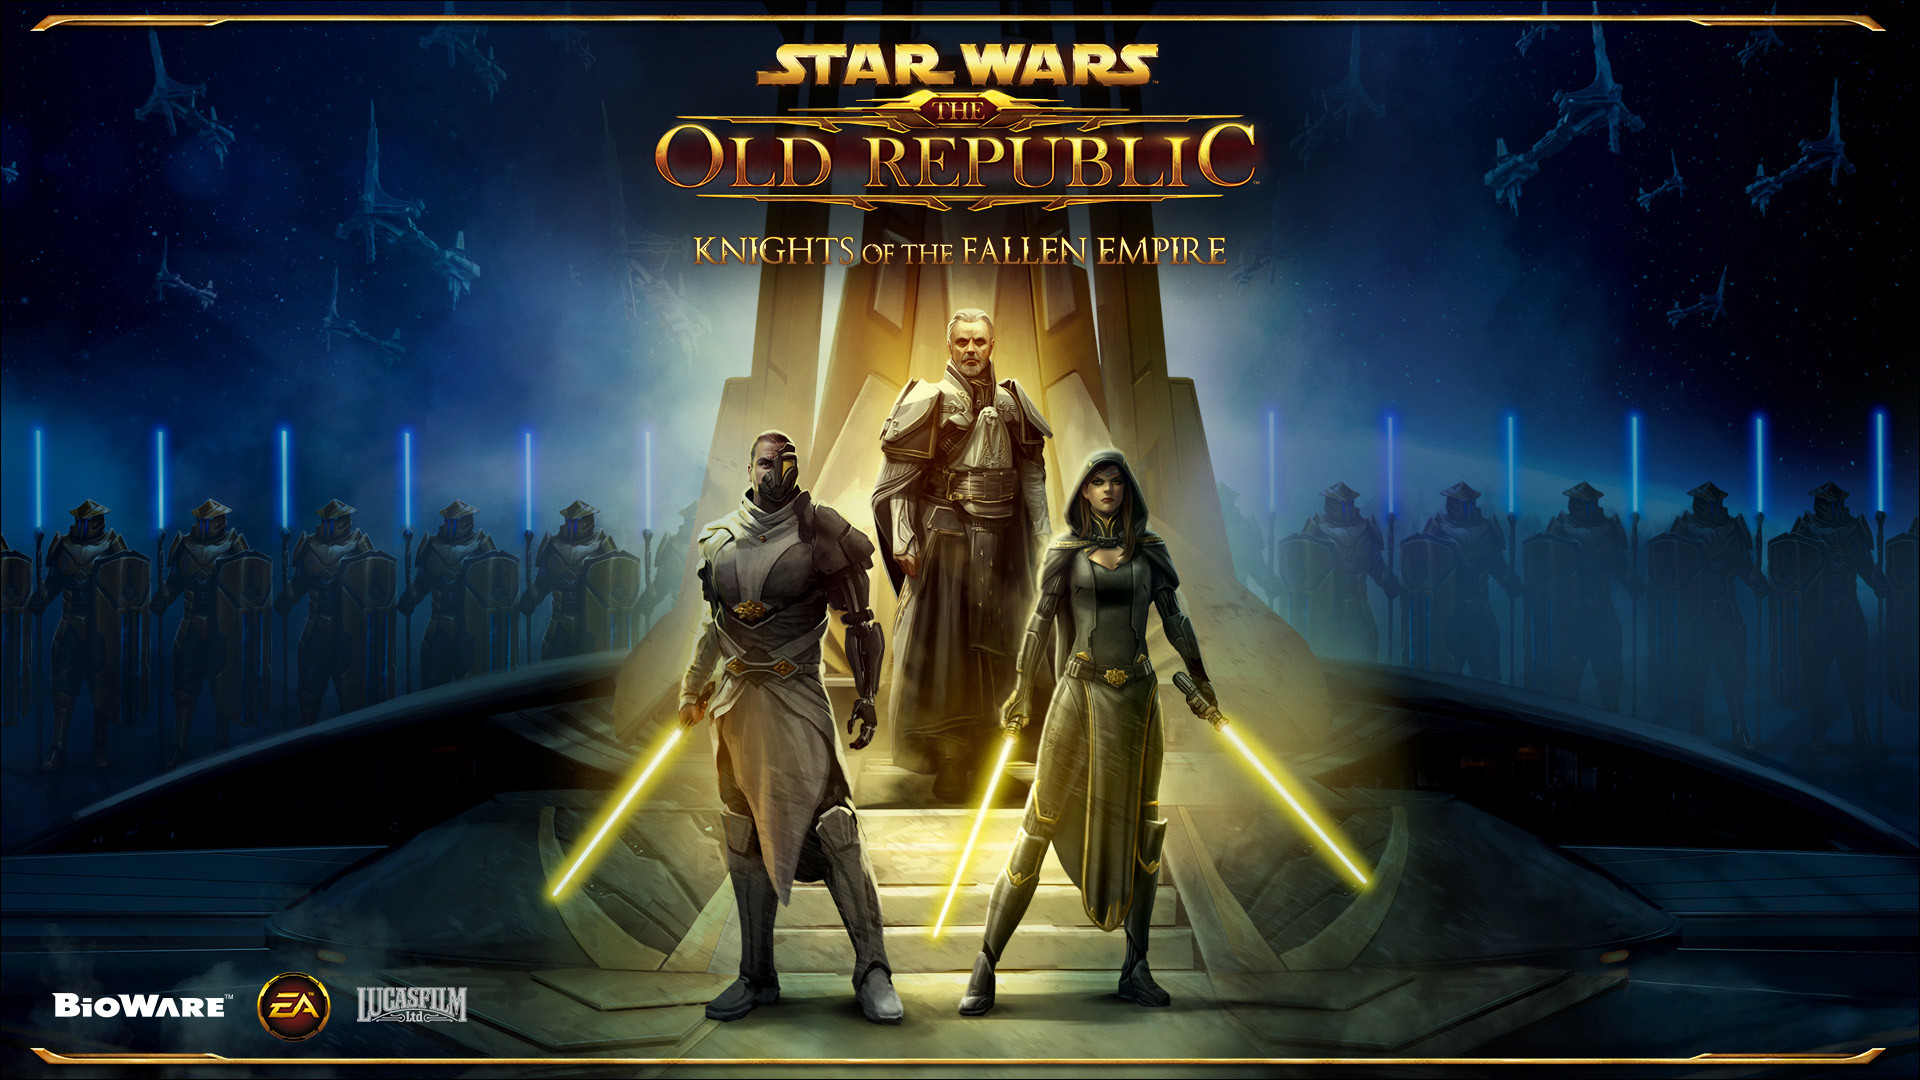 Star Wars the Old Republic Backgrounds (77+ images) - photo#31